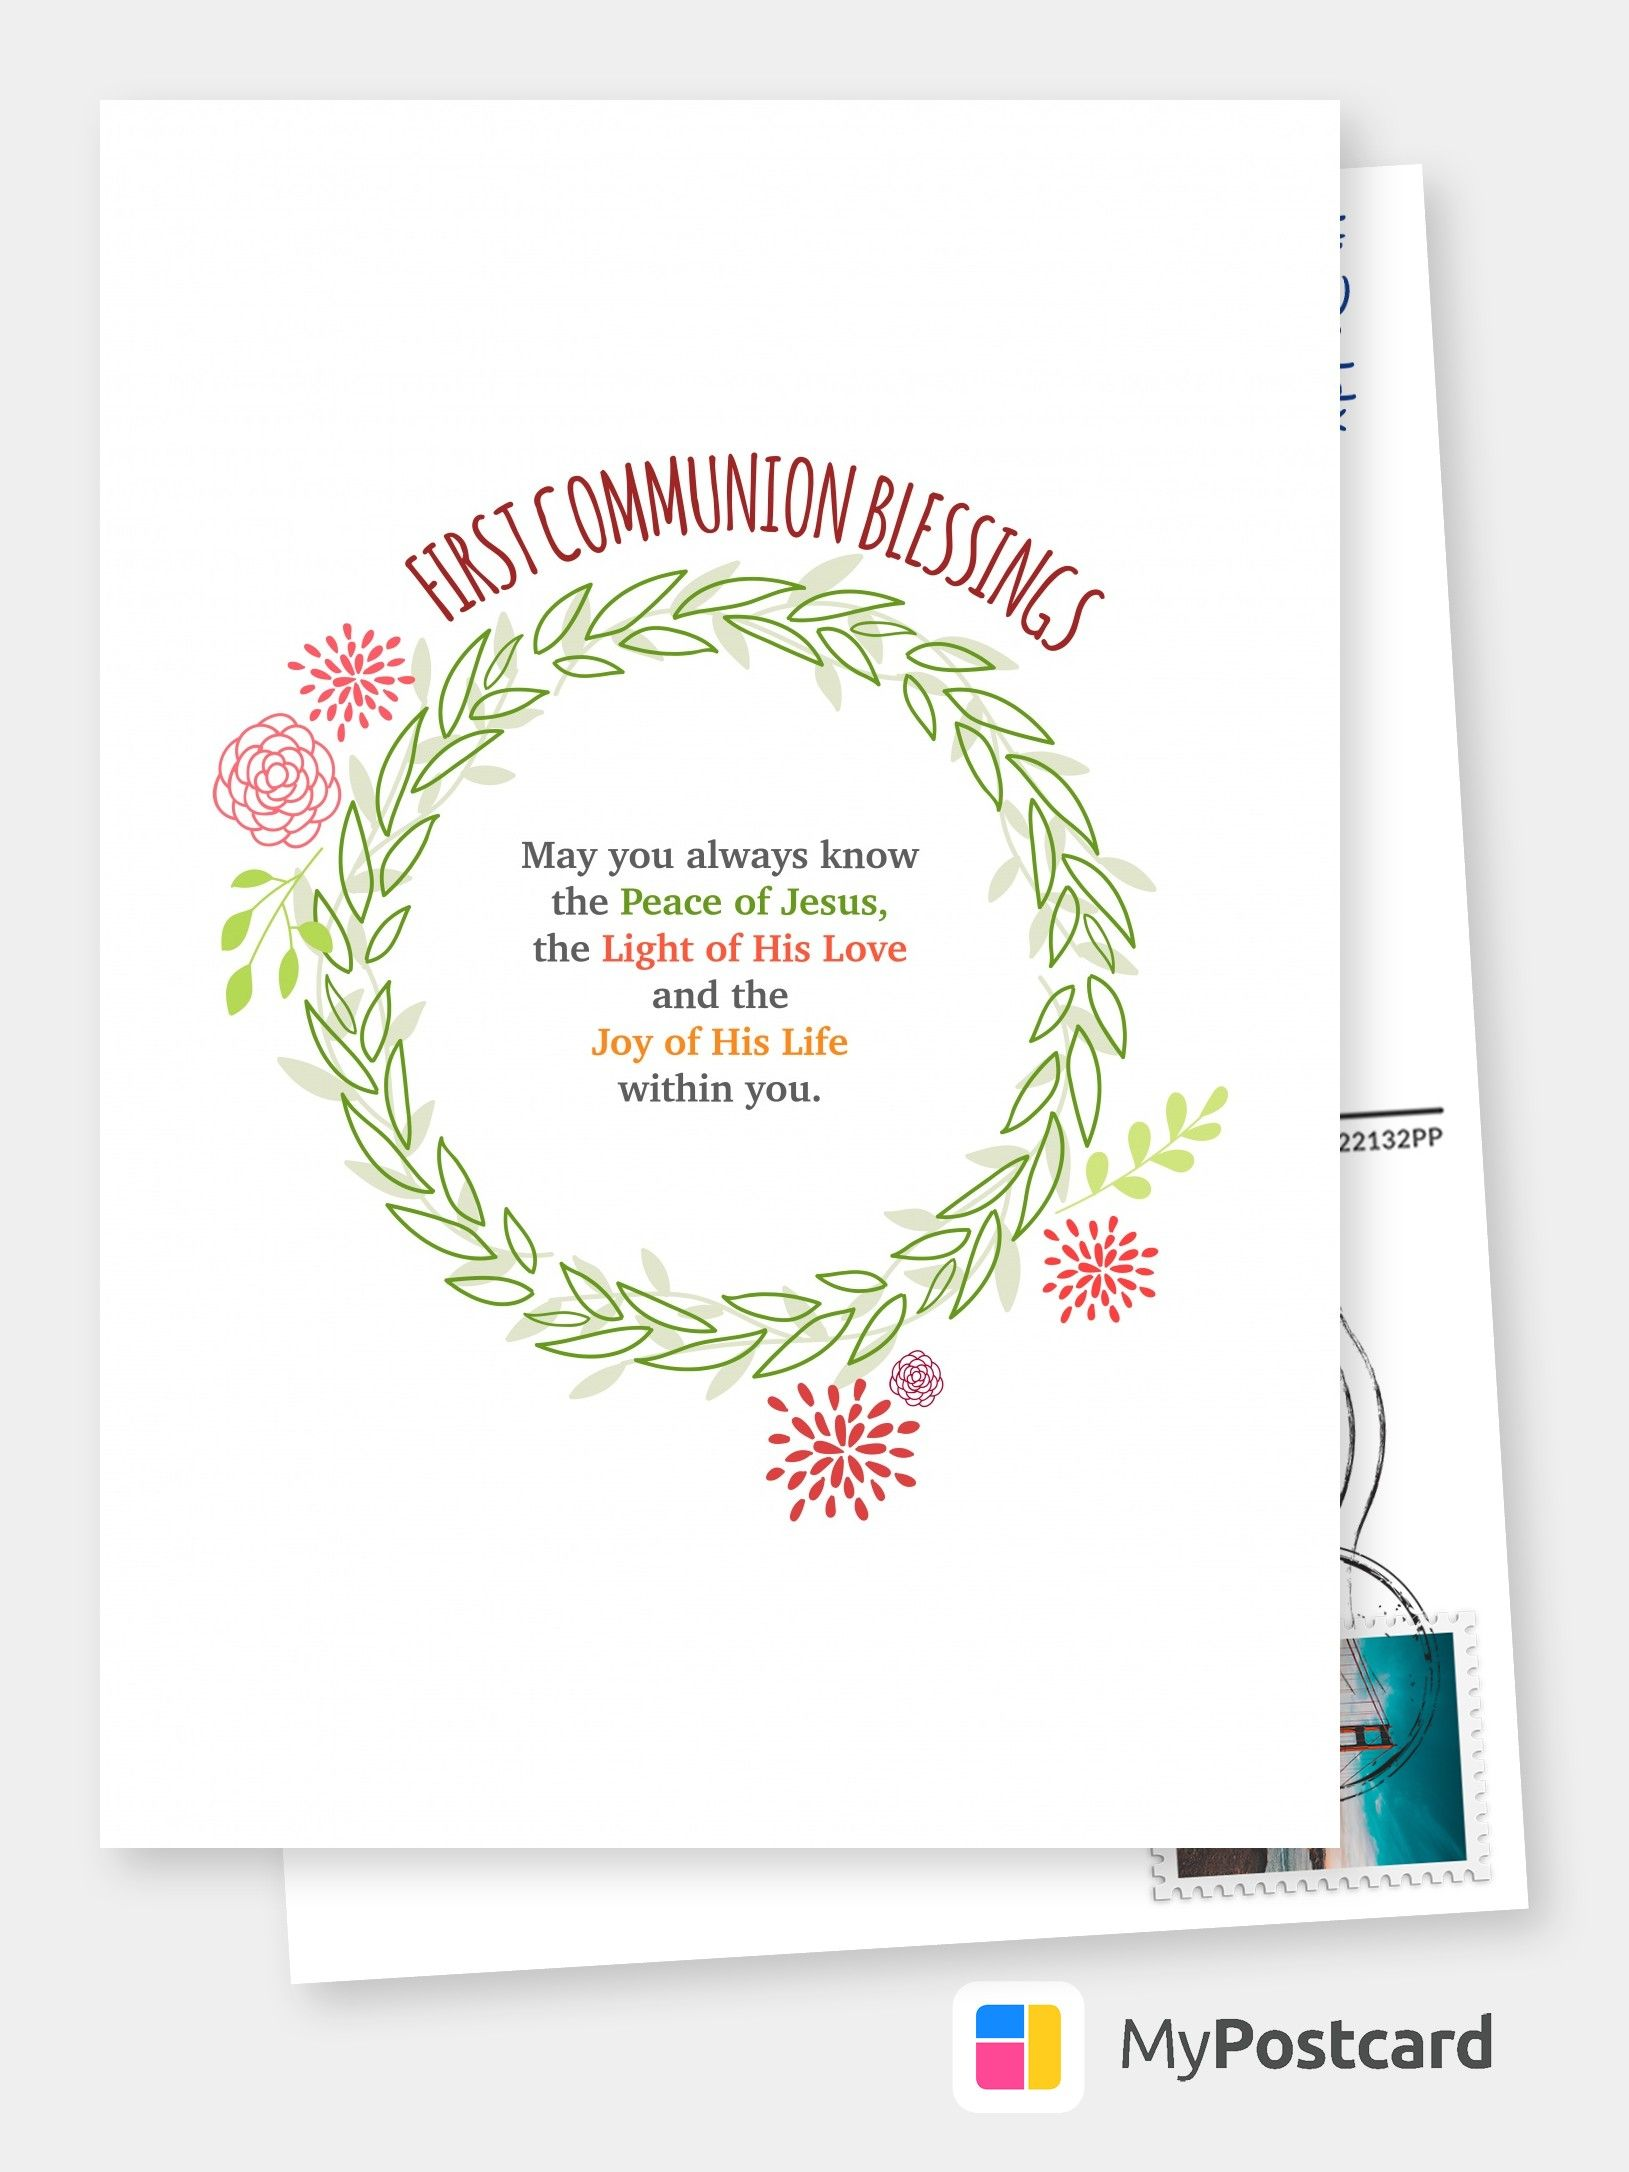 First communion blessings communion cards send real